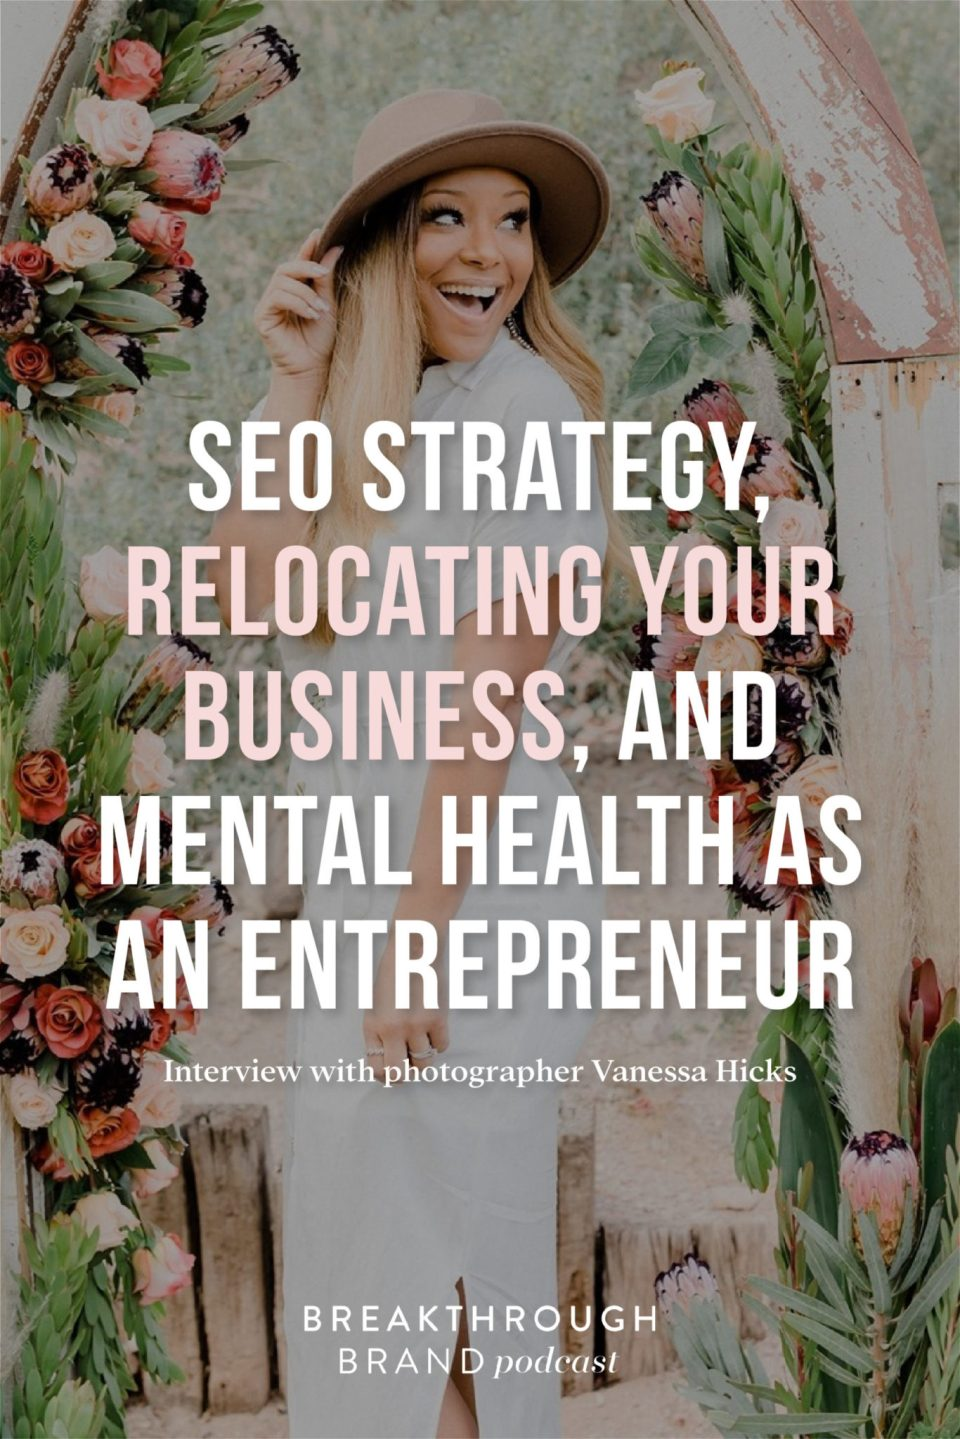 Hear photographer Vanessa Hicks on the Breakthrough Brand Podcast talking about SEO, relocating her business and mental health with Elizabeth McCravy.